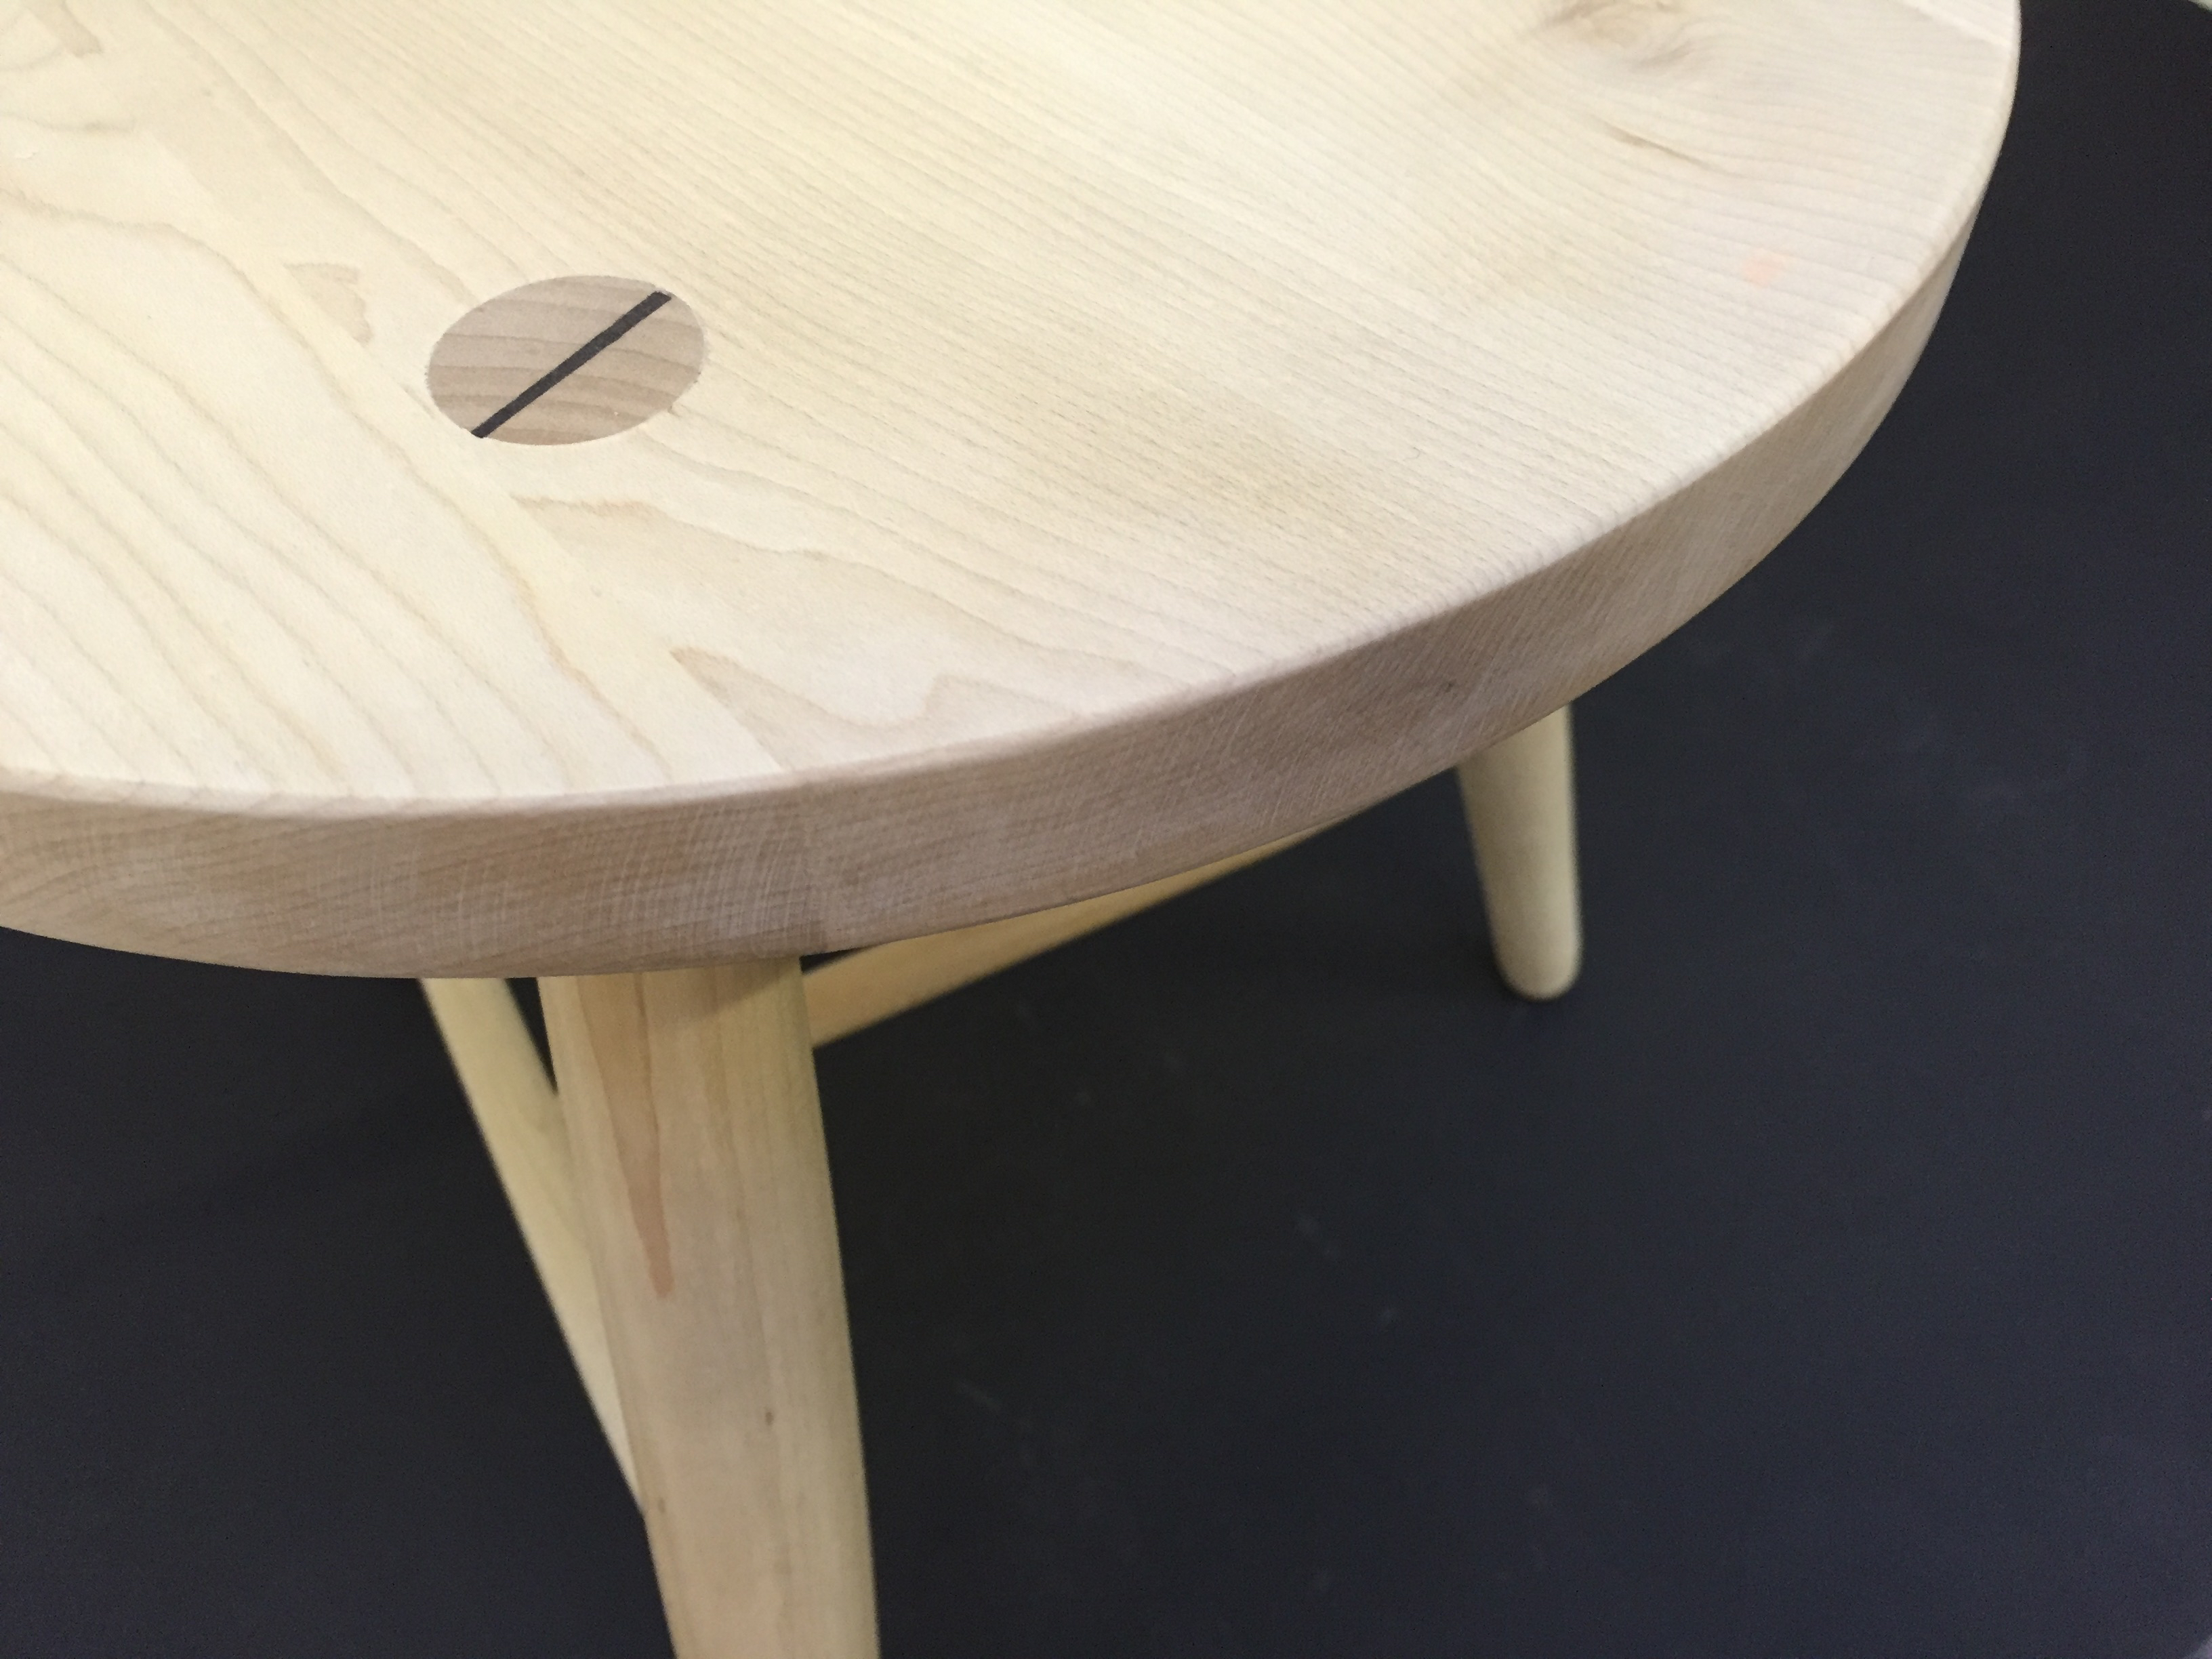 STUDIO LW Are Furniture Makers Emma Leslie And Rhiannon Wilkey.